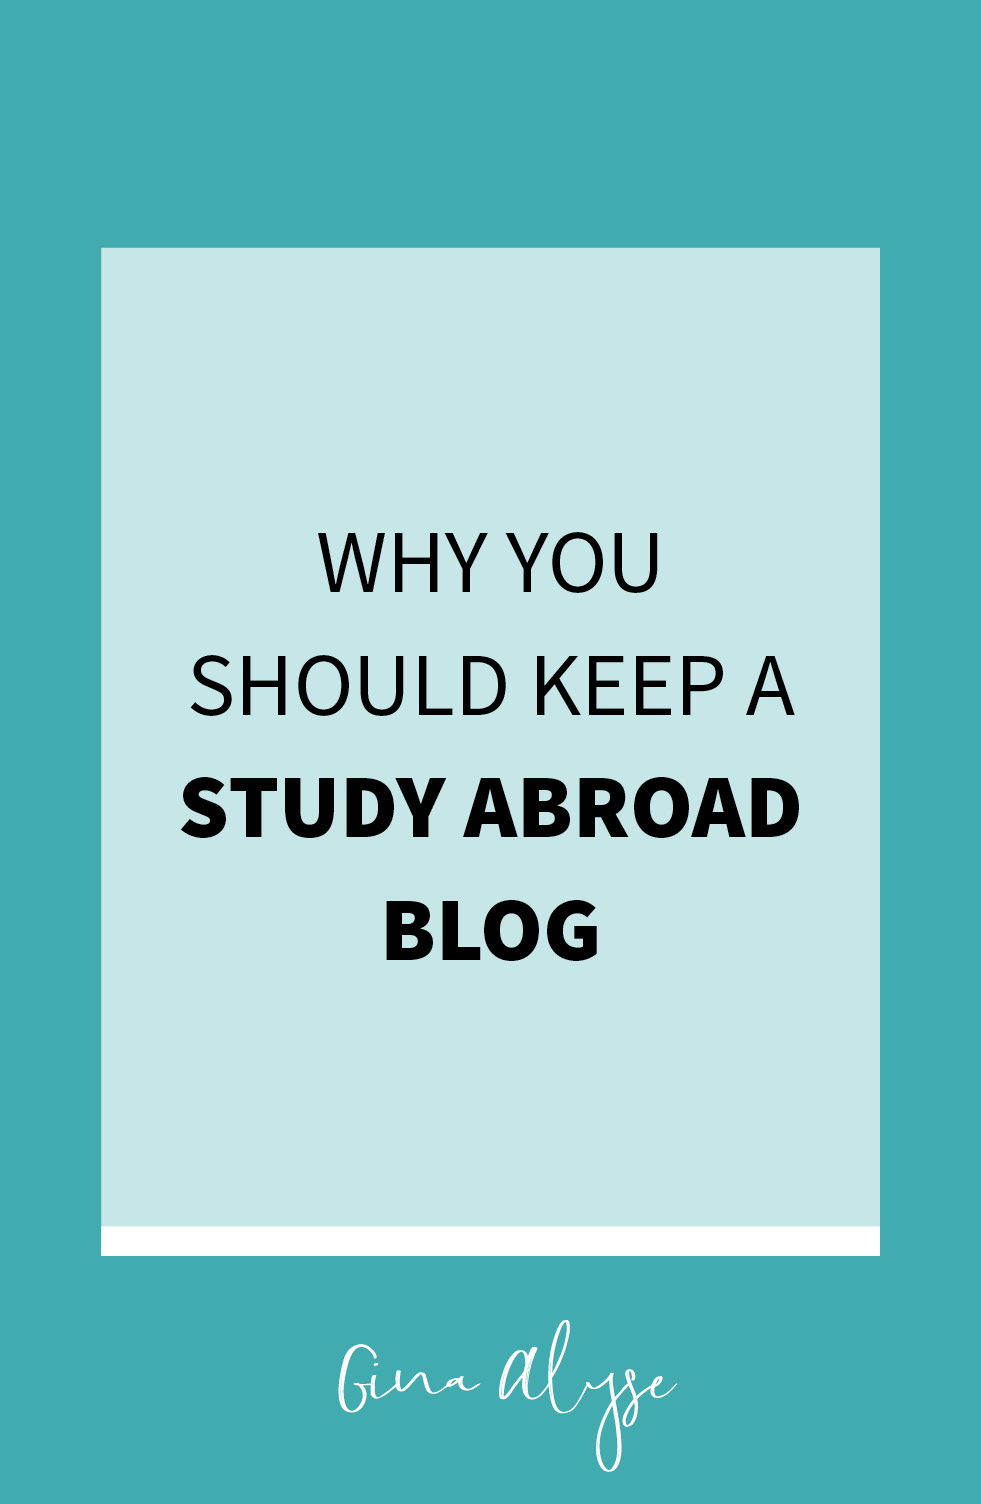 Why Keep a Study Abroad Blog